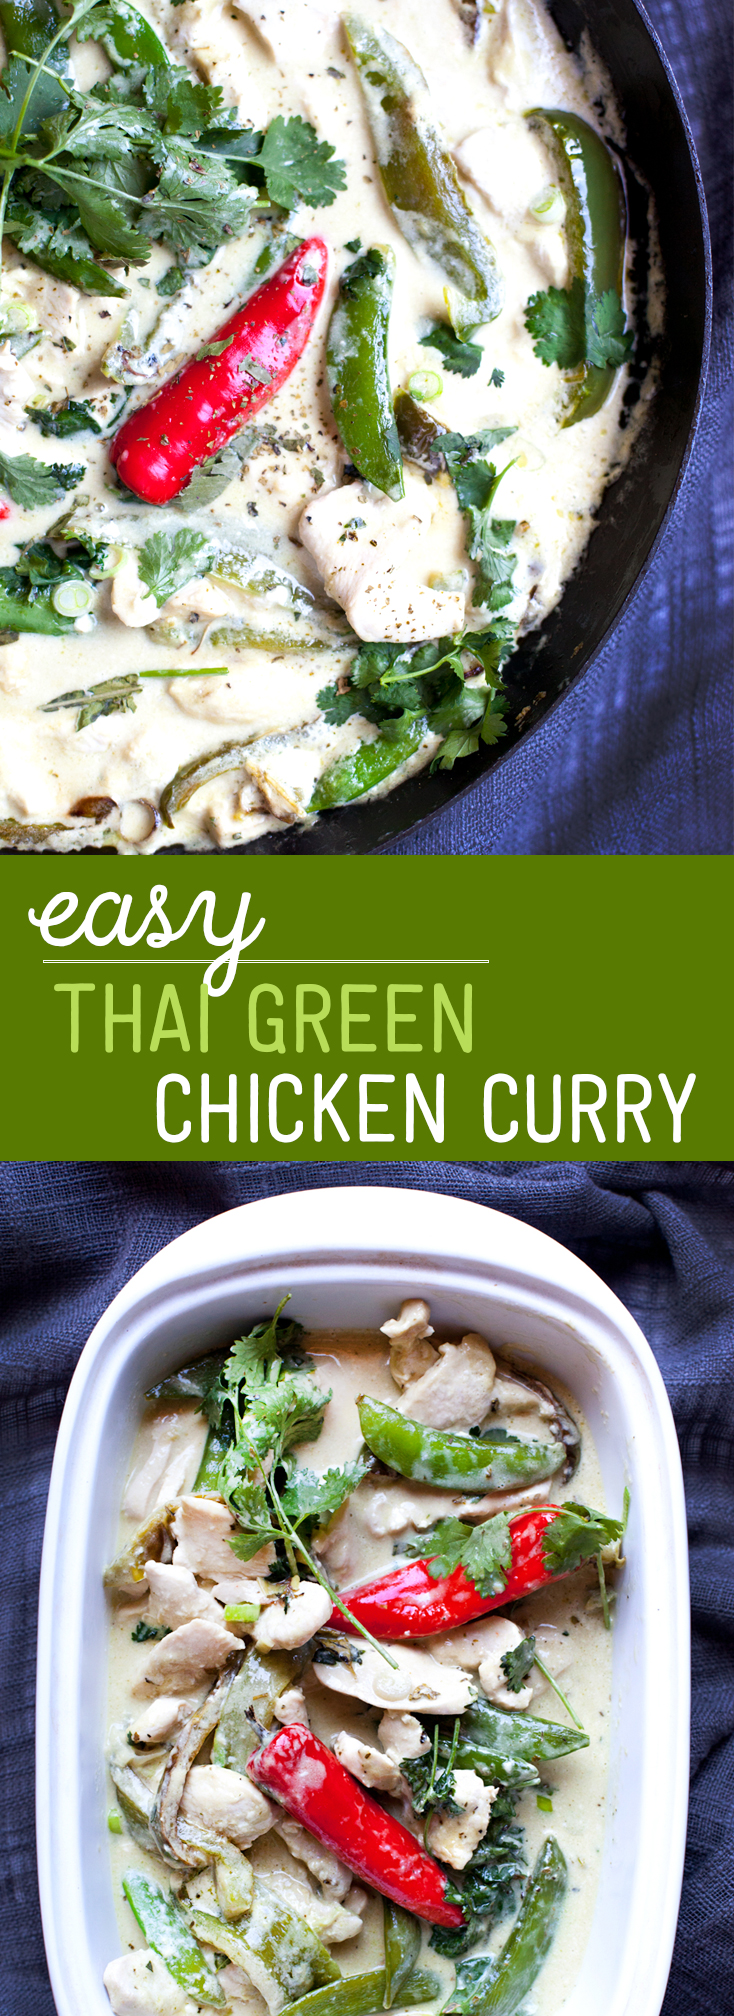 Easy Thai Green Chicken Curry - Make it in 20 Minutes